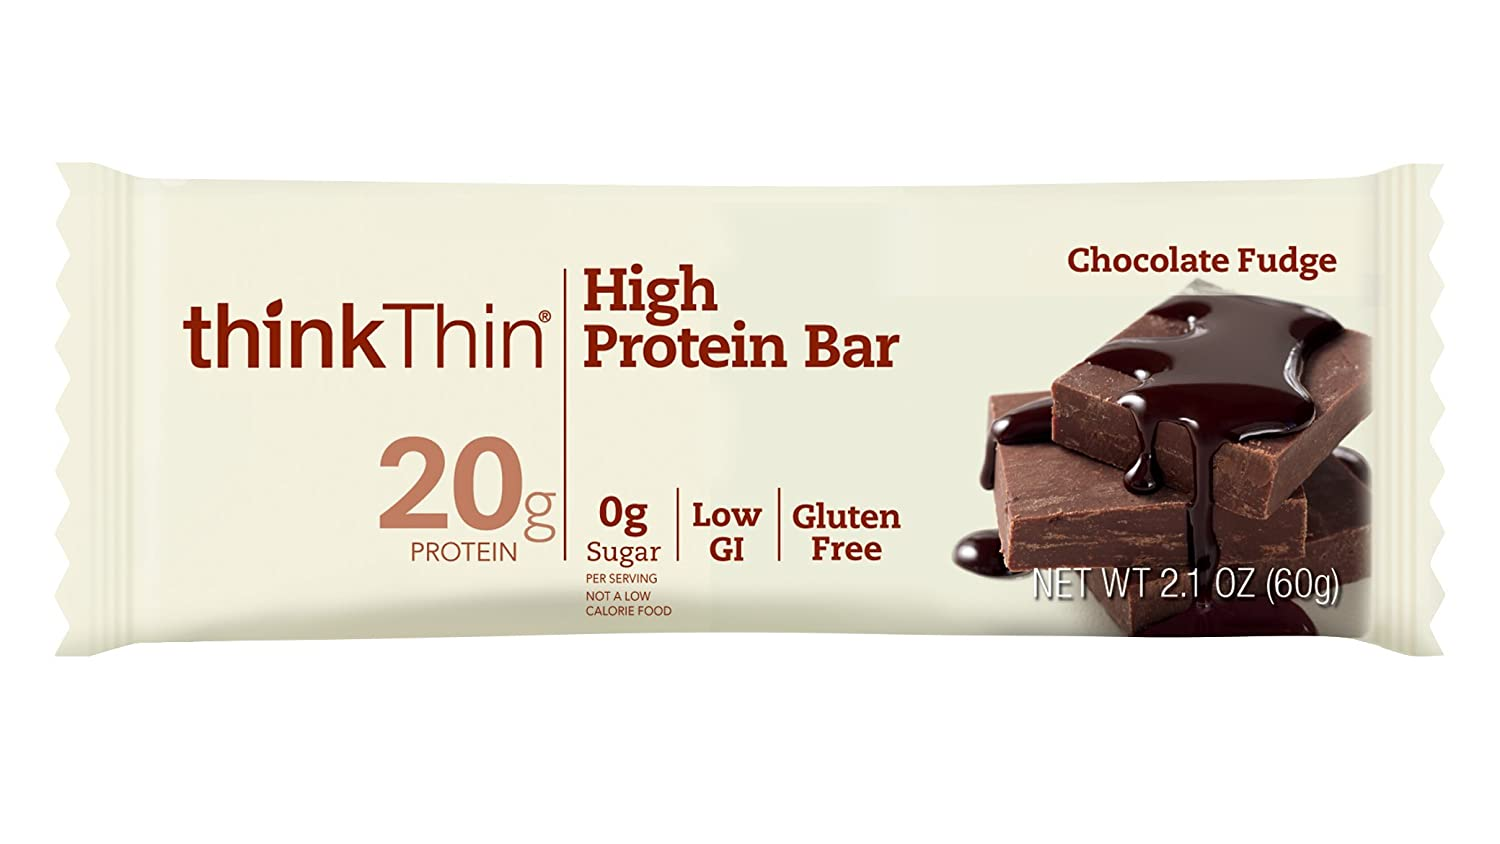 thinkThin High Protein Bars, Chocolate Fudge